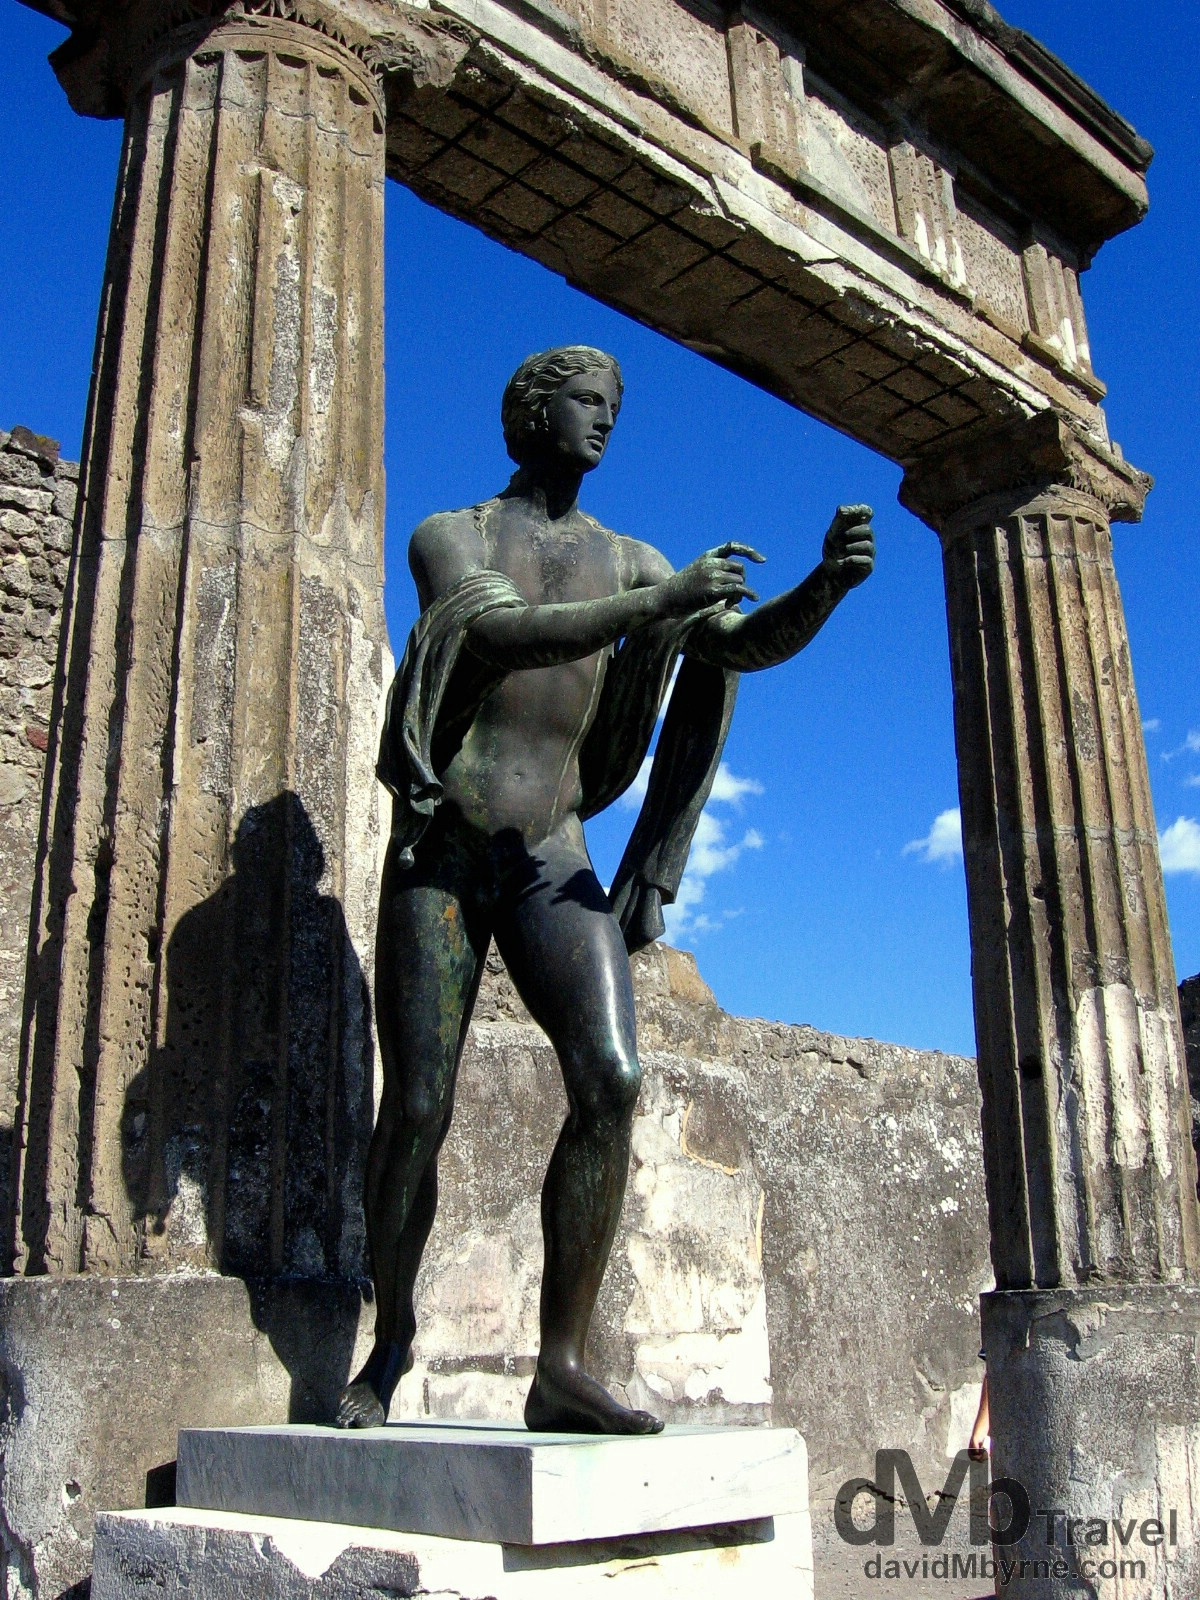 A statue of Apollo, the Greek God of light, in the Apollo Temple of the Forum in Pompeii, Campania, Italy. September 5th, 2007.